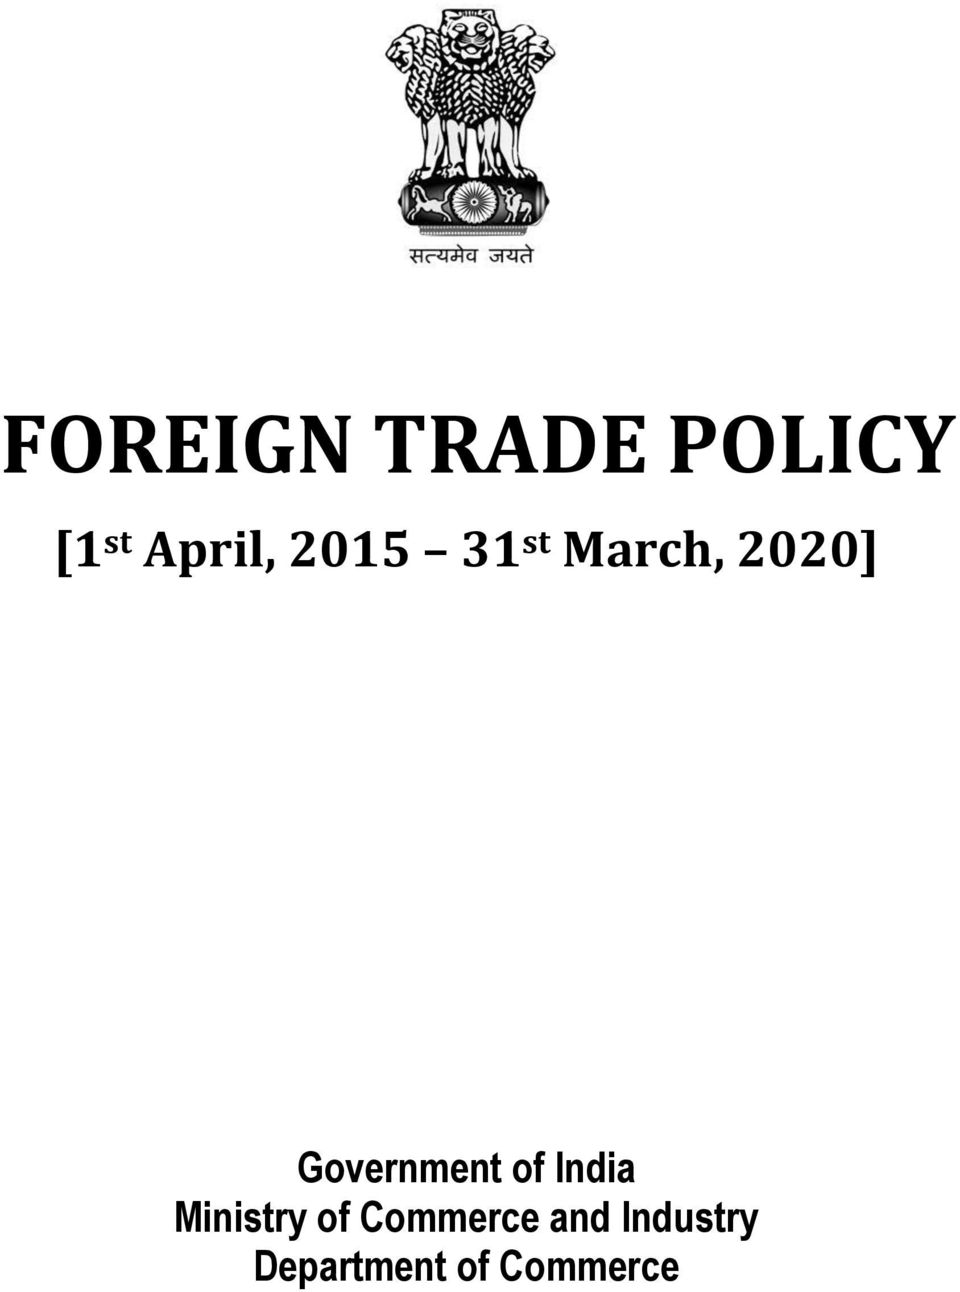 indias foreign trade policy Foreign trade in india includes all imports and exports to and from india at the level of central government it is administered by the ministry of commerce and industry foreign trade accounted for 488% of india's gdp in 2015.